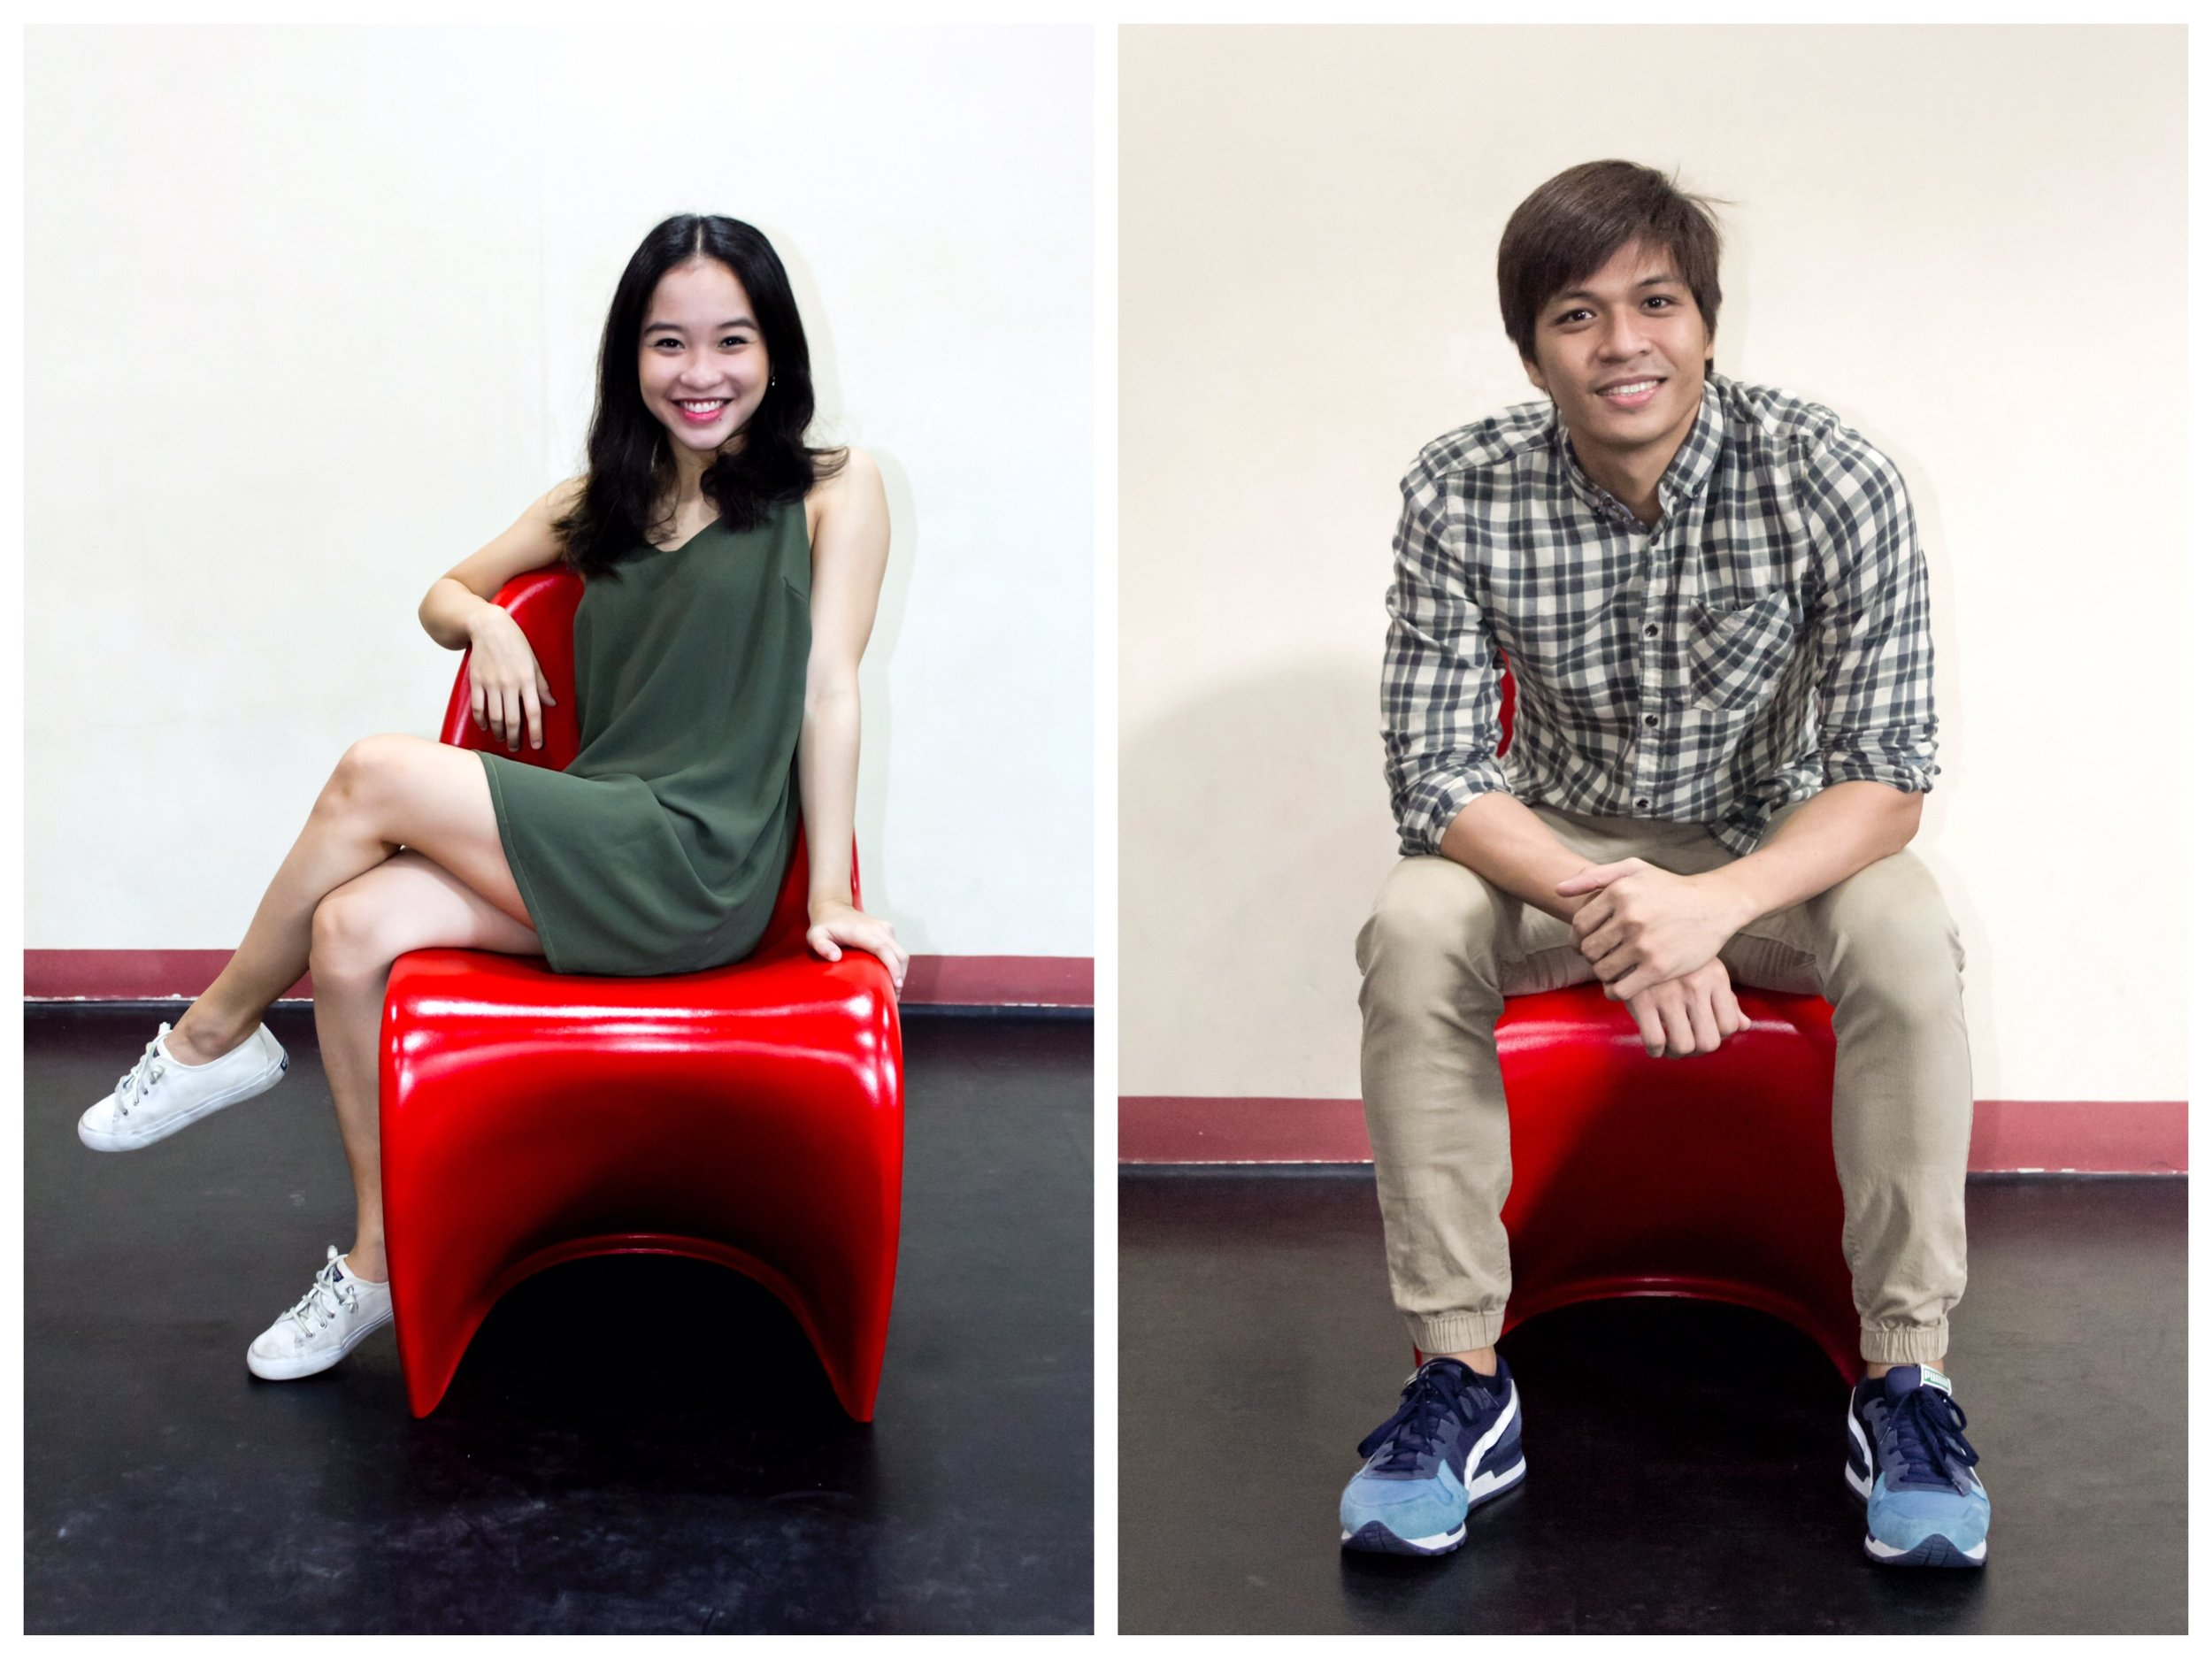 Jasmine Pia Dames and Mark Sumaylo are the newly promoted principal dancers of Ballet Manila. Photos by Jimmy Villanueva